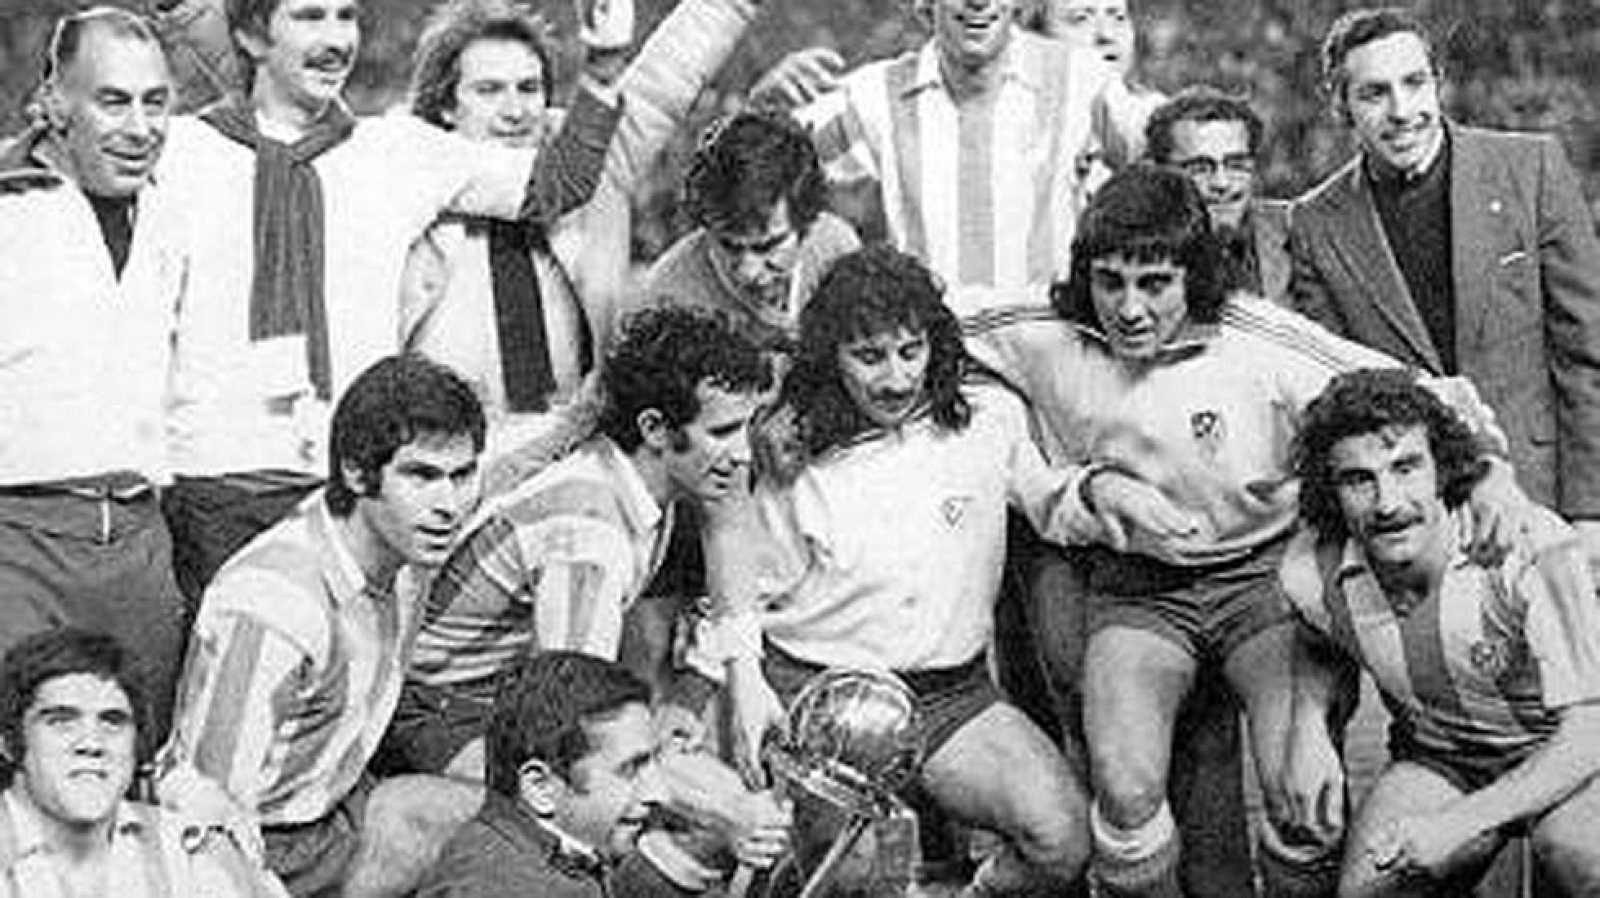 El Atlético de Madrid ganó la Intercontinental al Independiente de Avellaneda